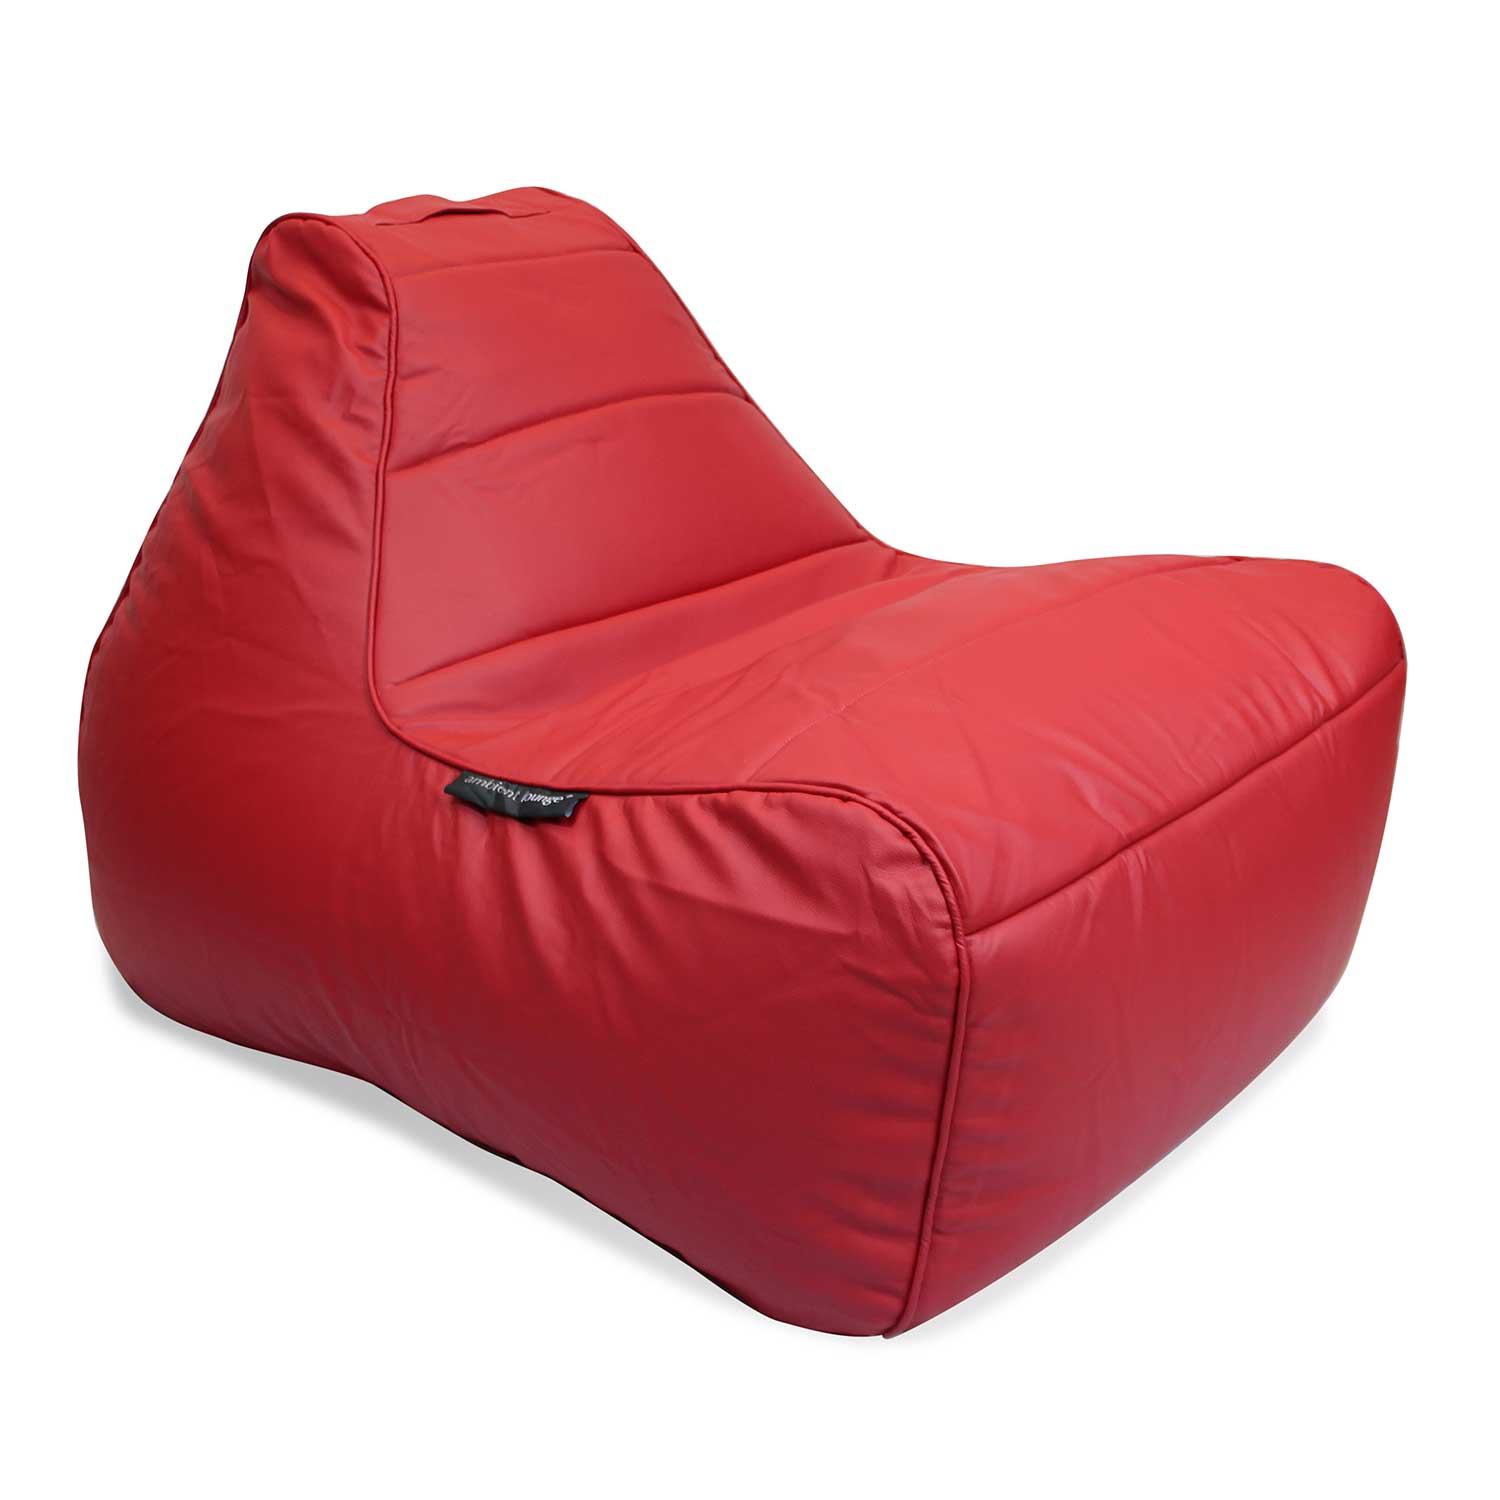 mode red lounger bean bag chair tivoli lounger bean bag. Black Bedroom Furniture Sets. Home Design Ideas